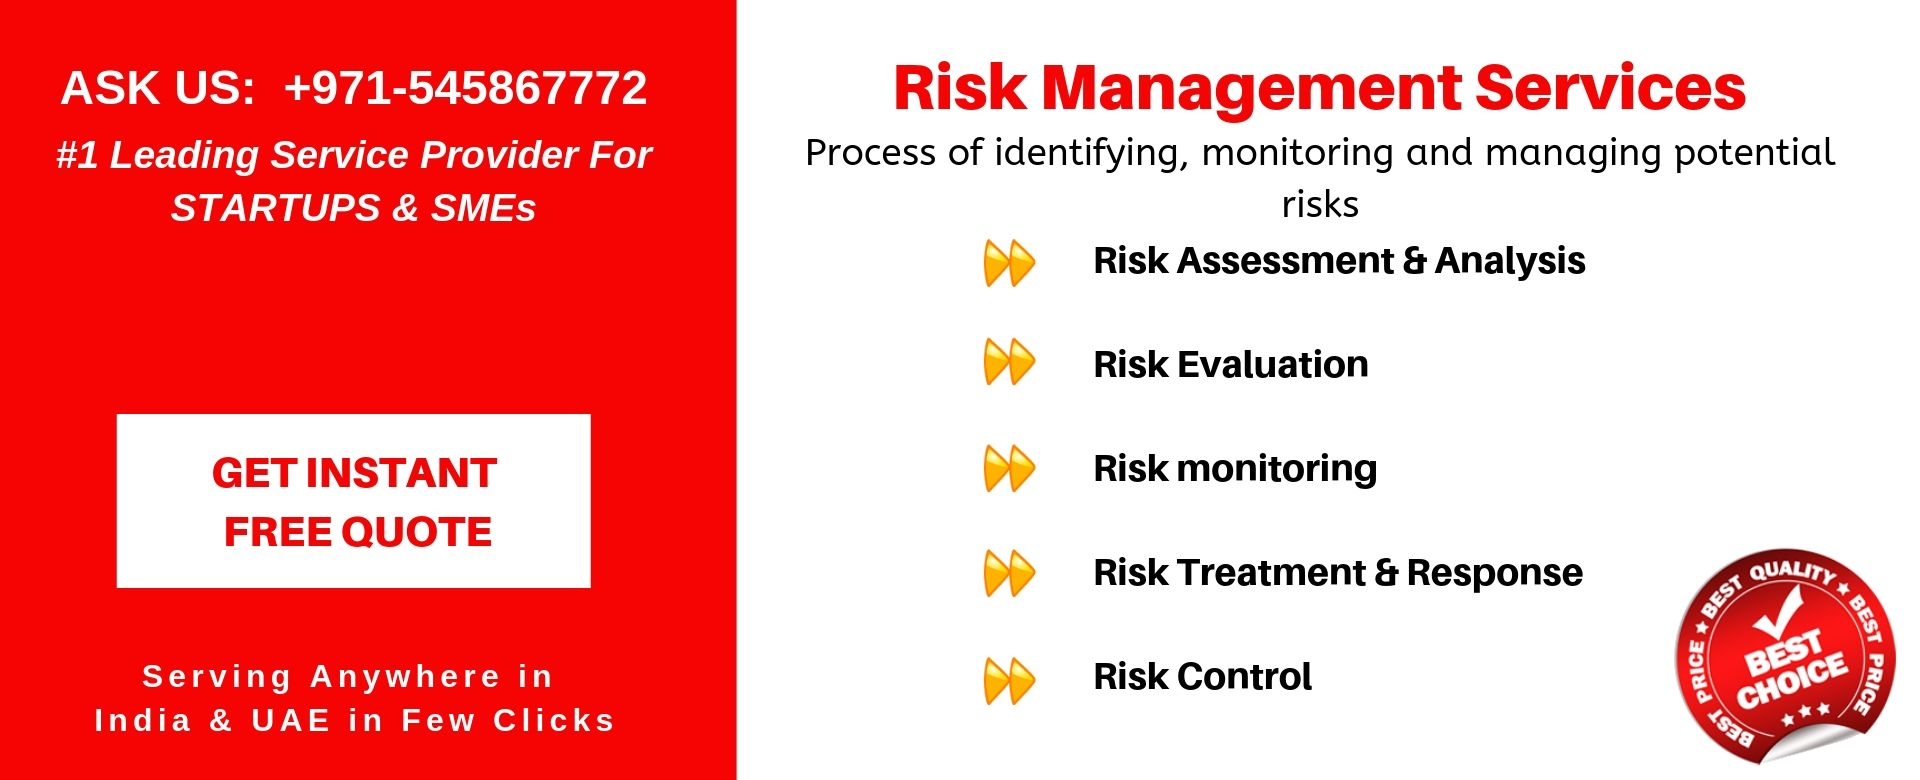 risk-management-services-in-uae